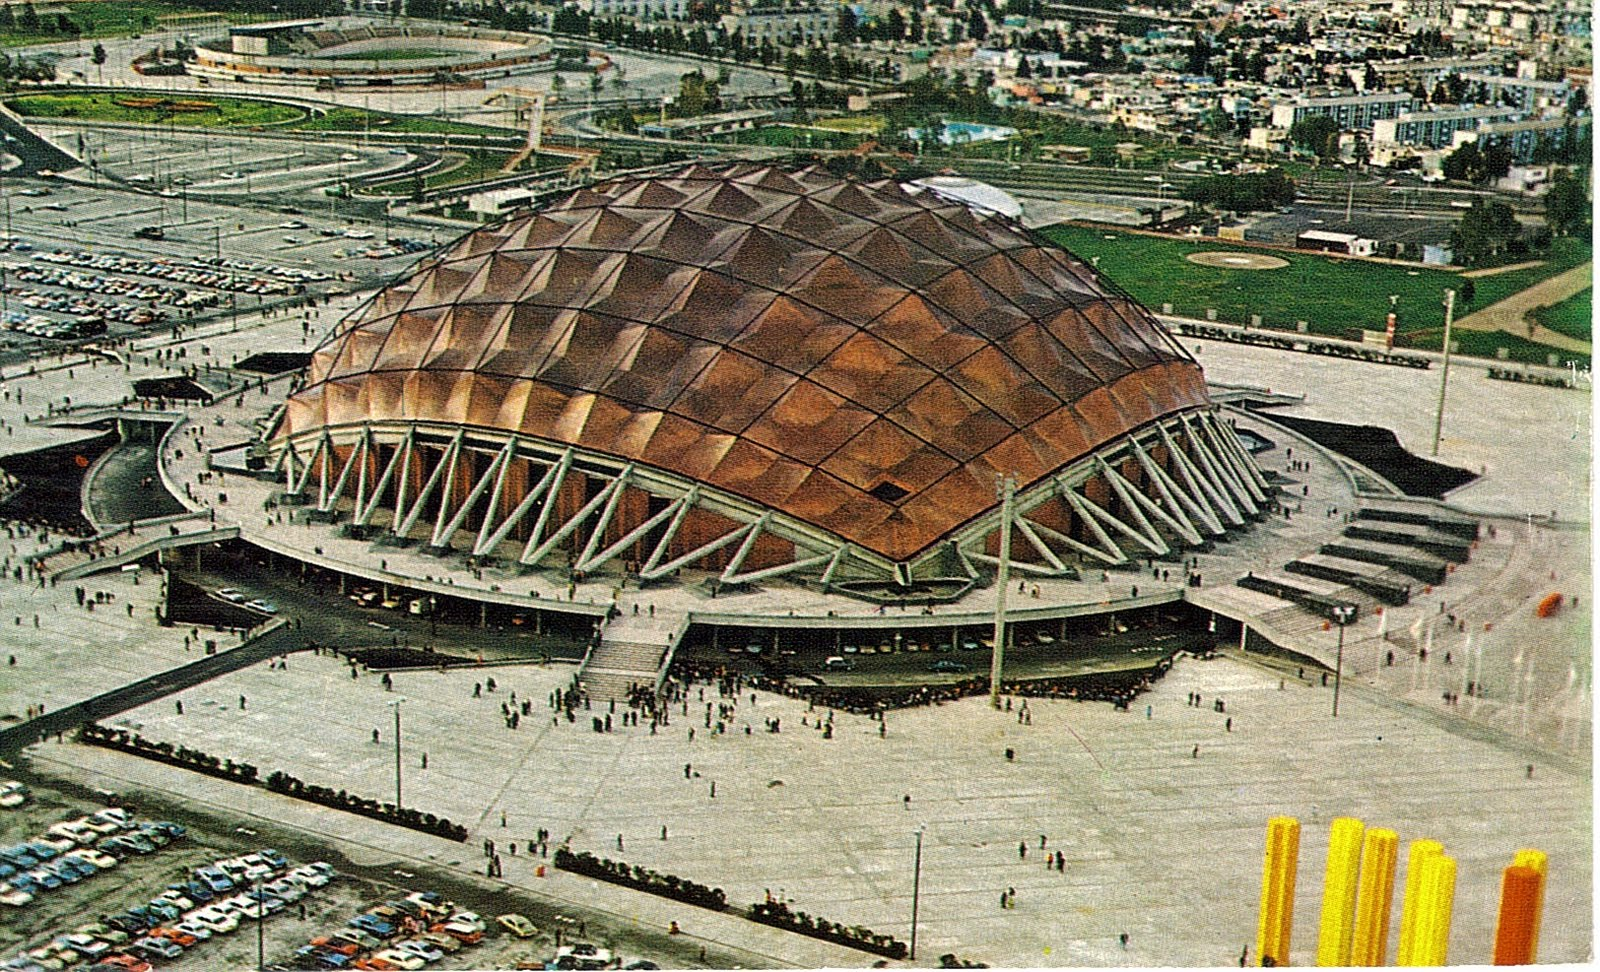 50 Geodesic Domes Around the World | Palacio de los Deportes, Mexico